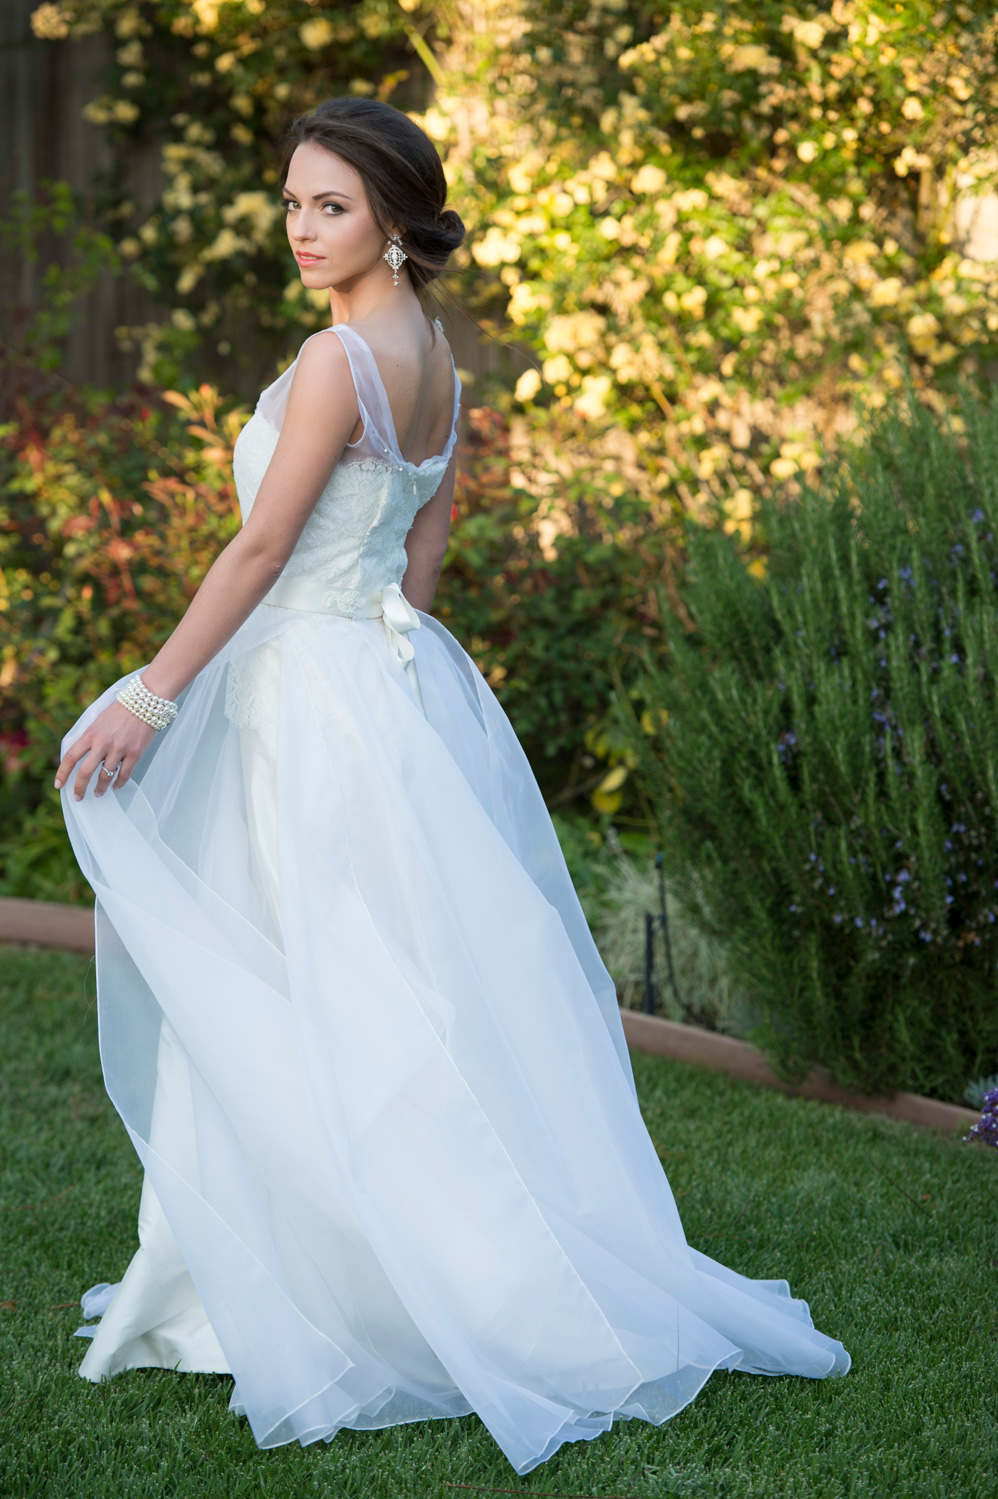 Bridal Fashion Photograhy 011.jpg